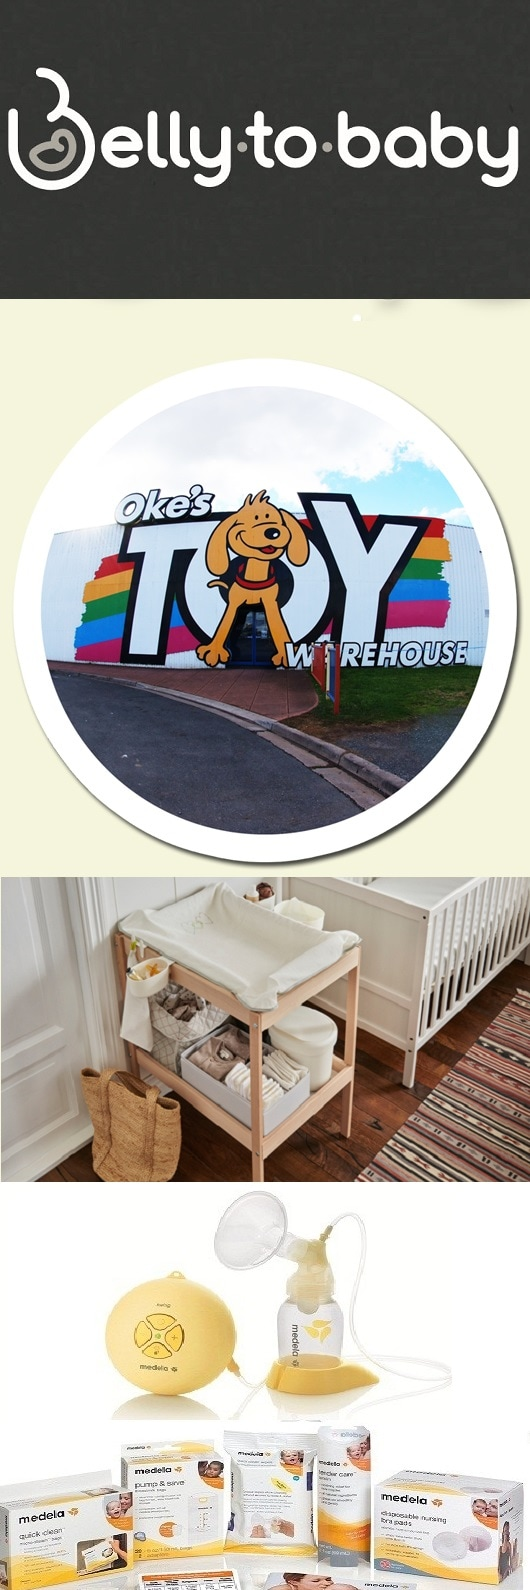 Belly To Baby - Baby Prams, Furniture & Accessories - 429 Wilson St ...